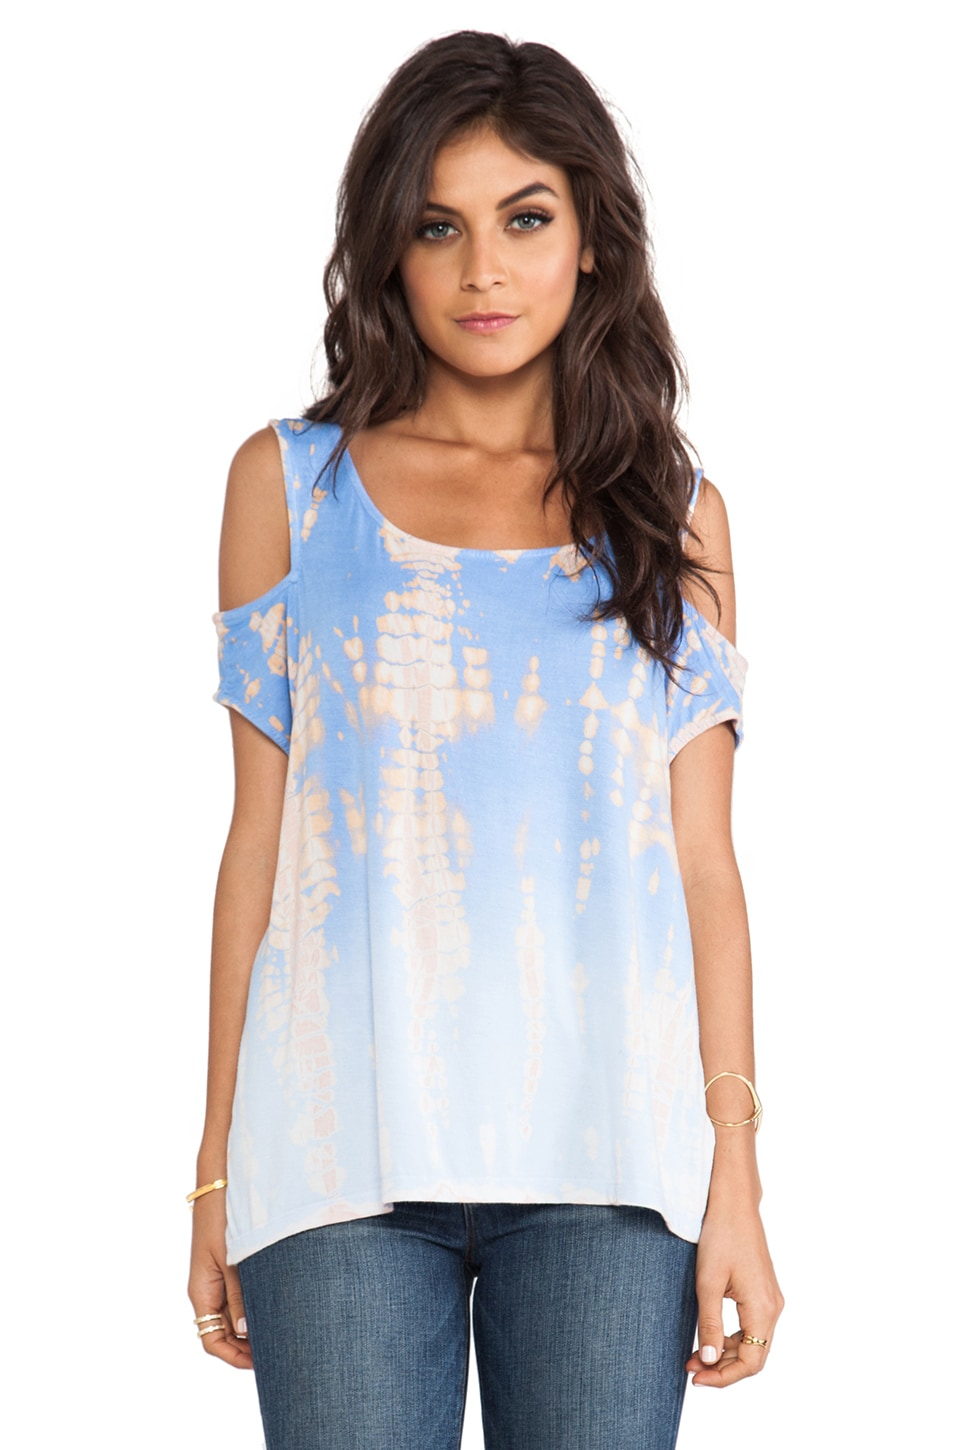 Gypsy 05 Cold Shoulder Top in Blue Bell